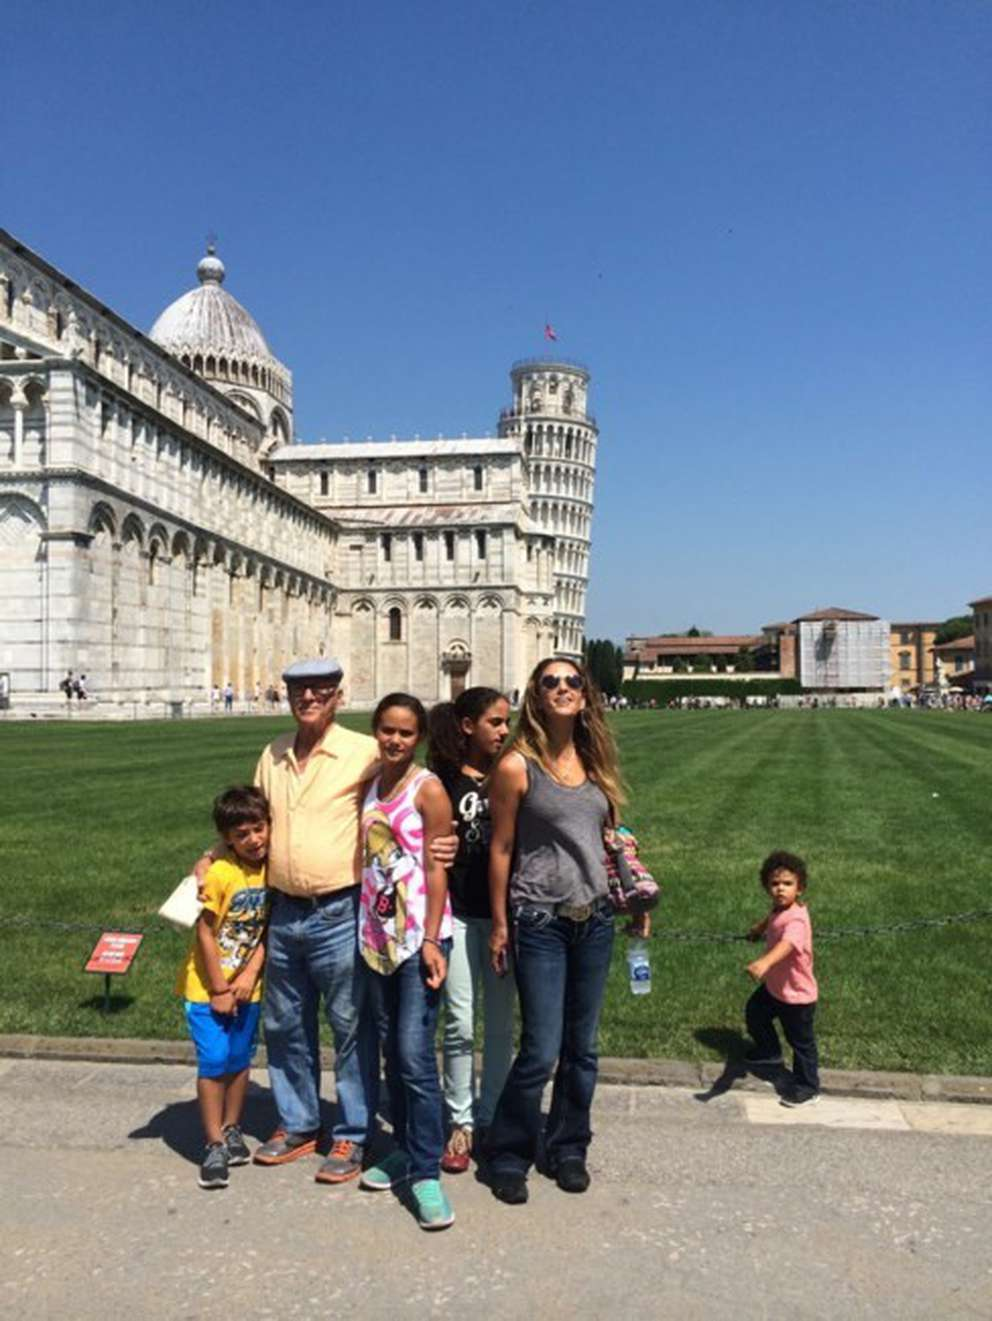 Guido Tiozzo had one son and four grandchildren. He's pictured here with family on a trip to Pisa, Italy. (Photo courtesy Gino Tiozzo)